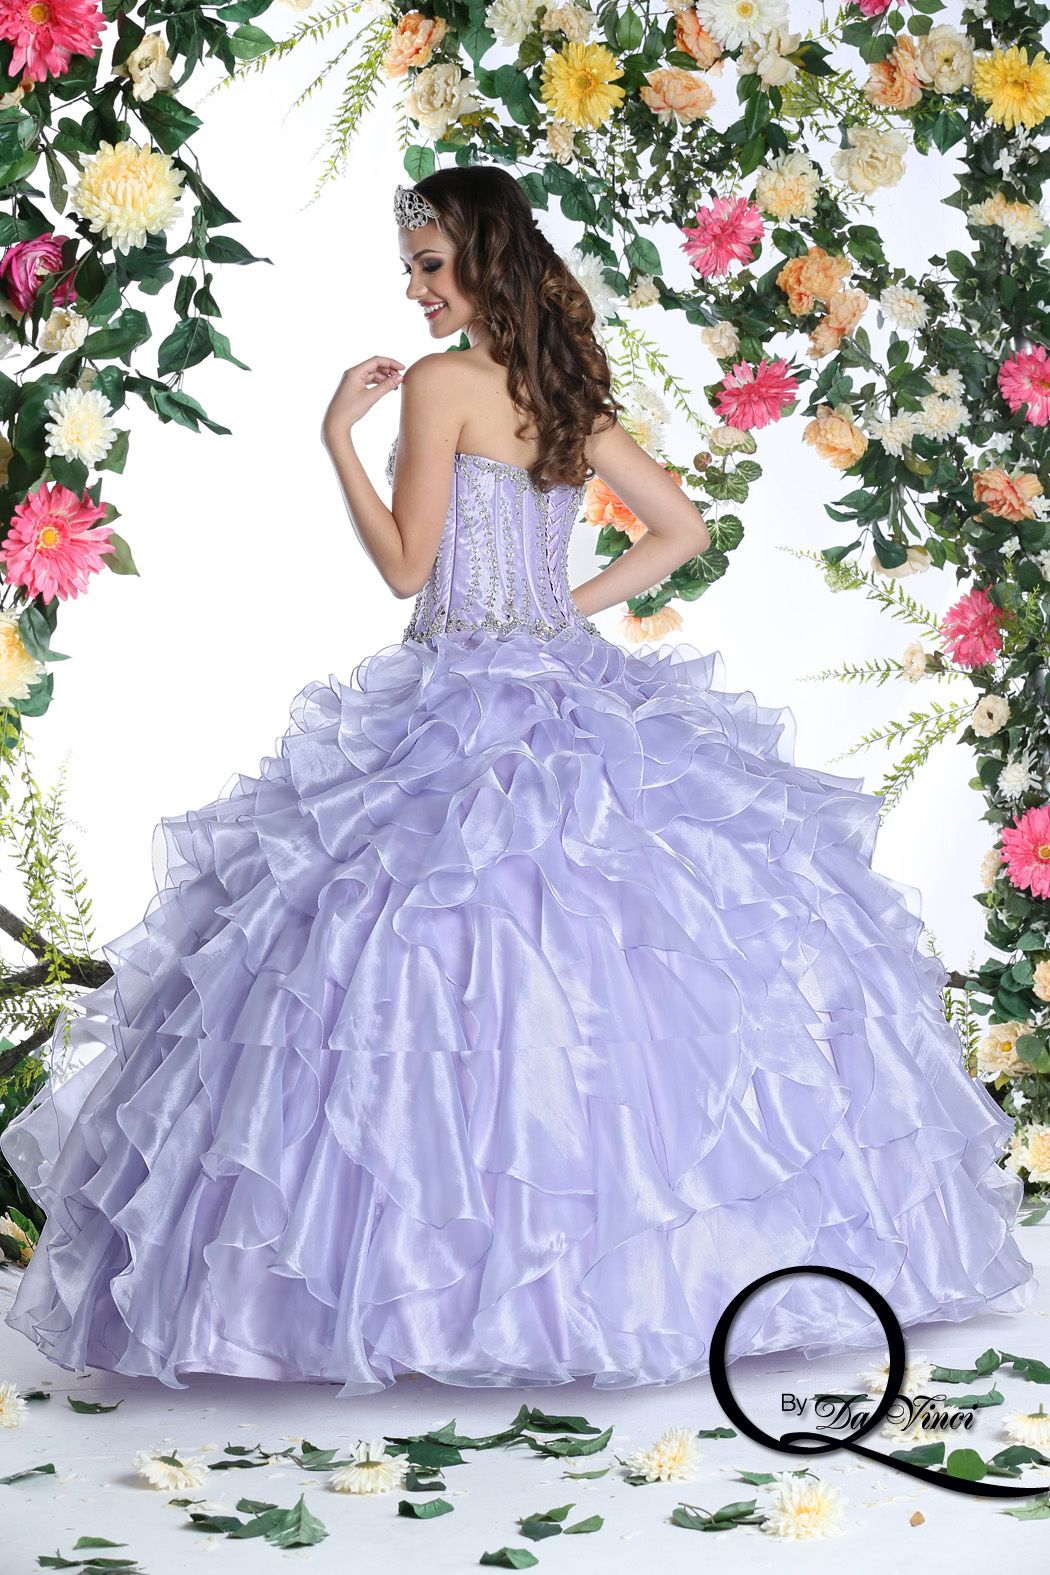 Color q online - Fashionably Chic Q By Davinci Style 80266 Featuring Hermoso Shimmer Organza In Colors Mint Lilac